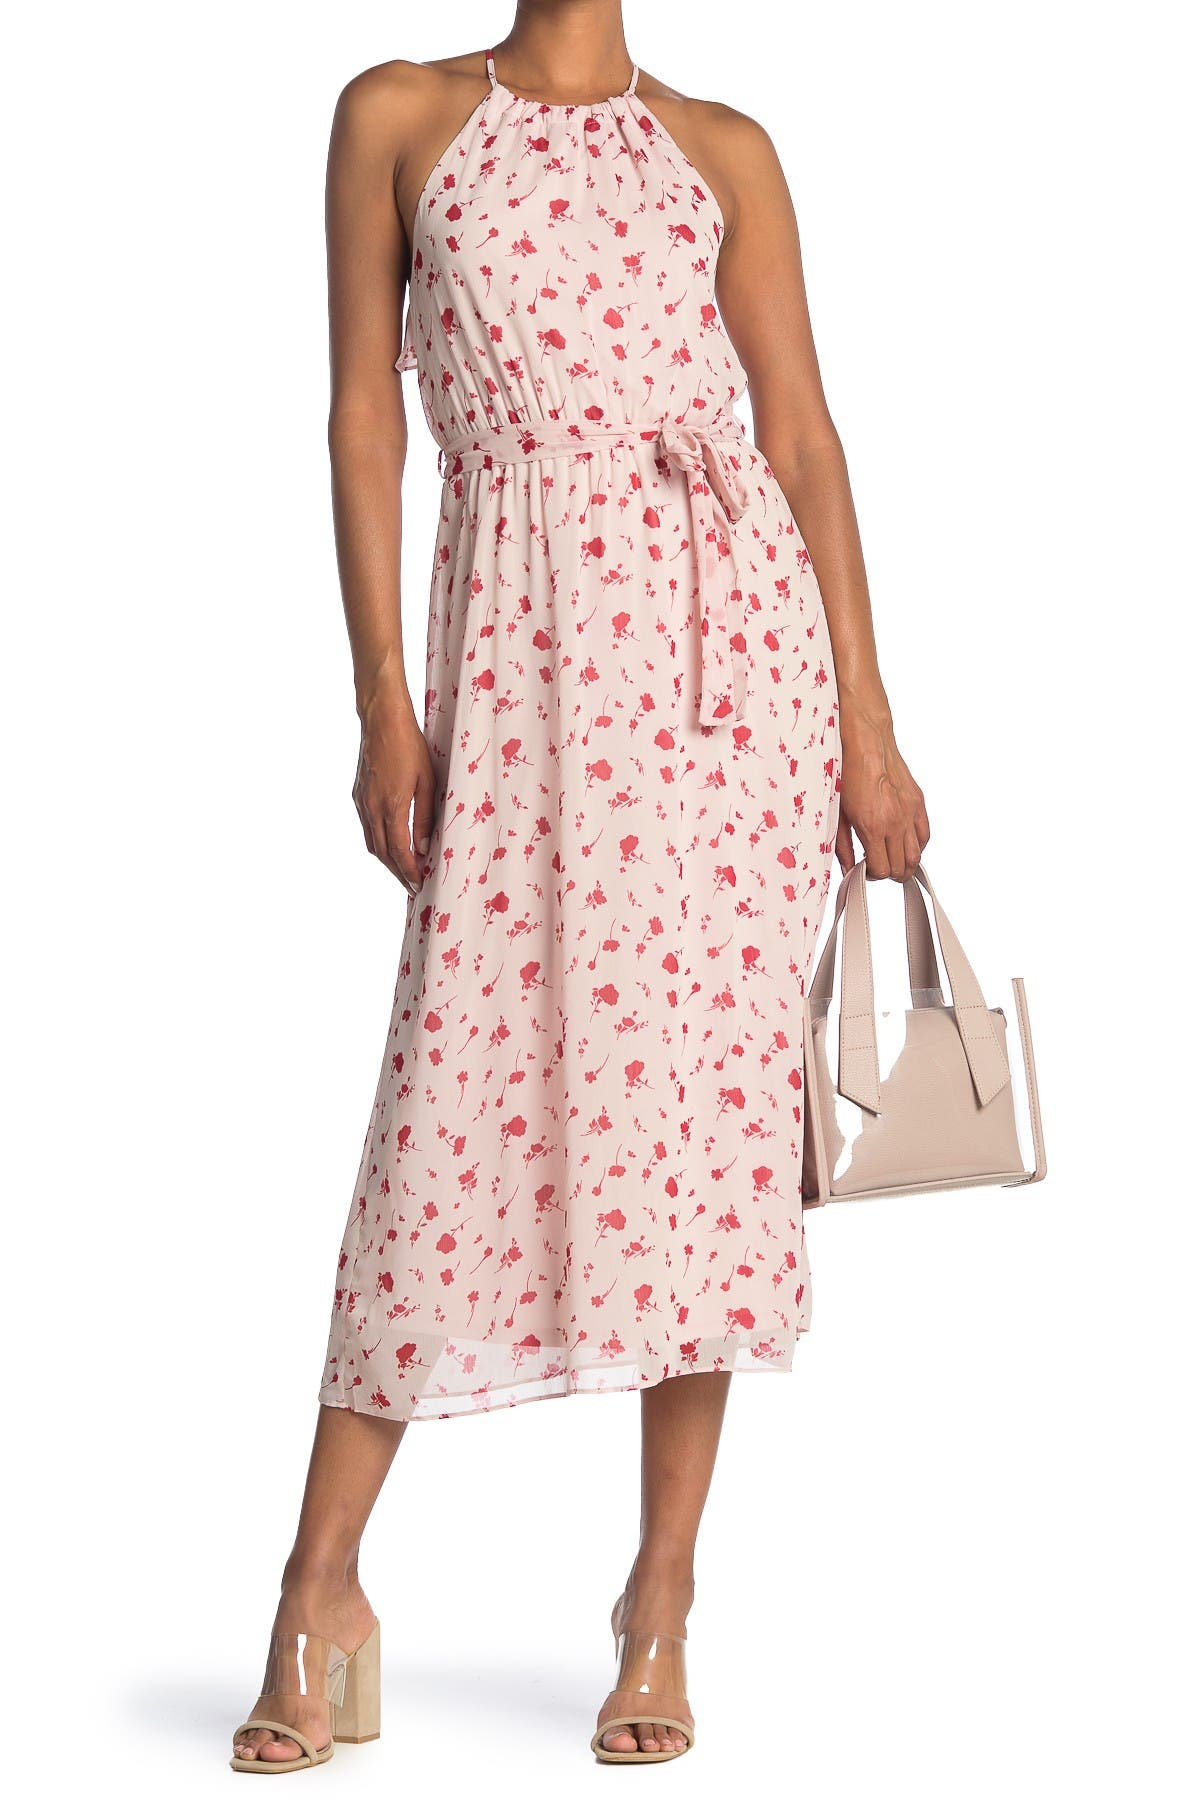 Image of Lush Floral Print Waist Tie Ruffle Back Midi Dress